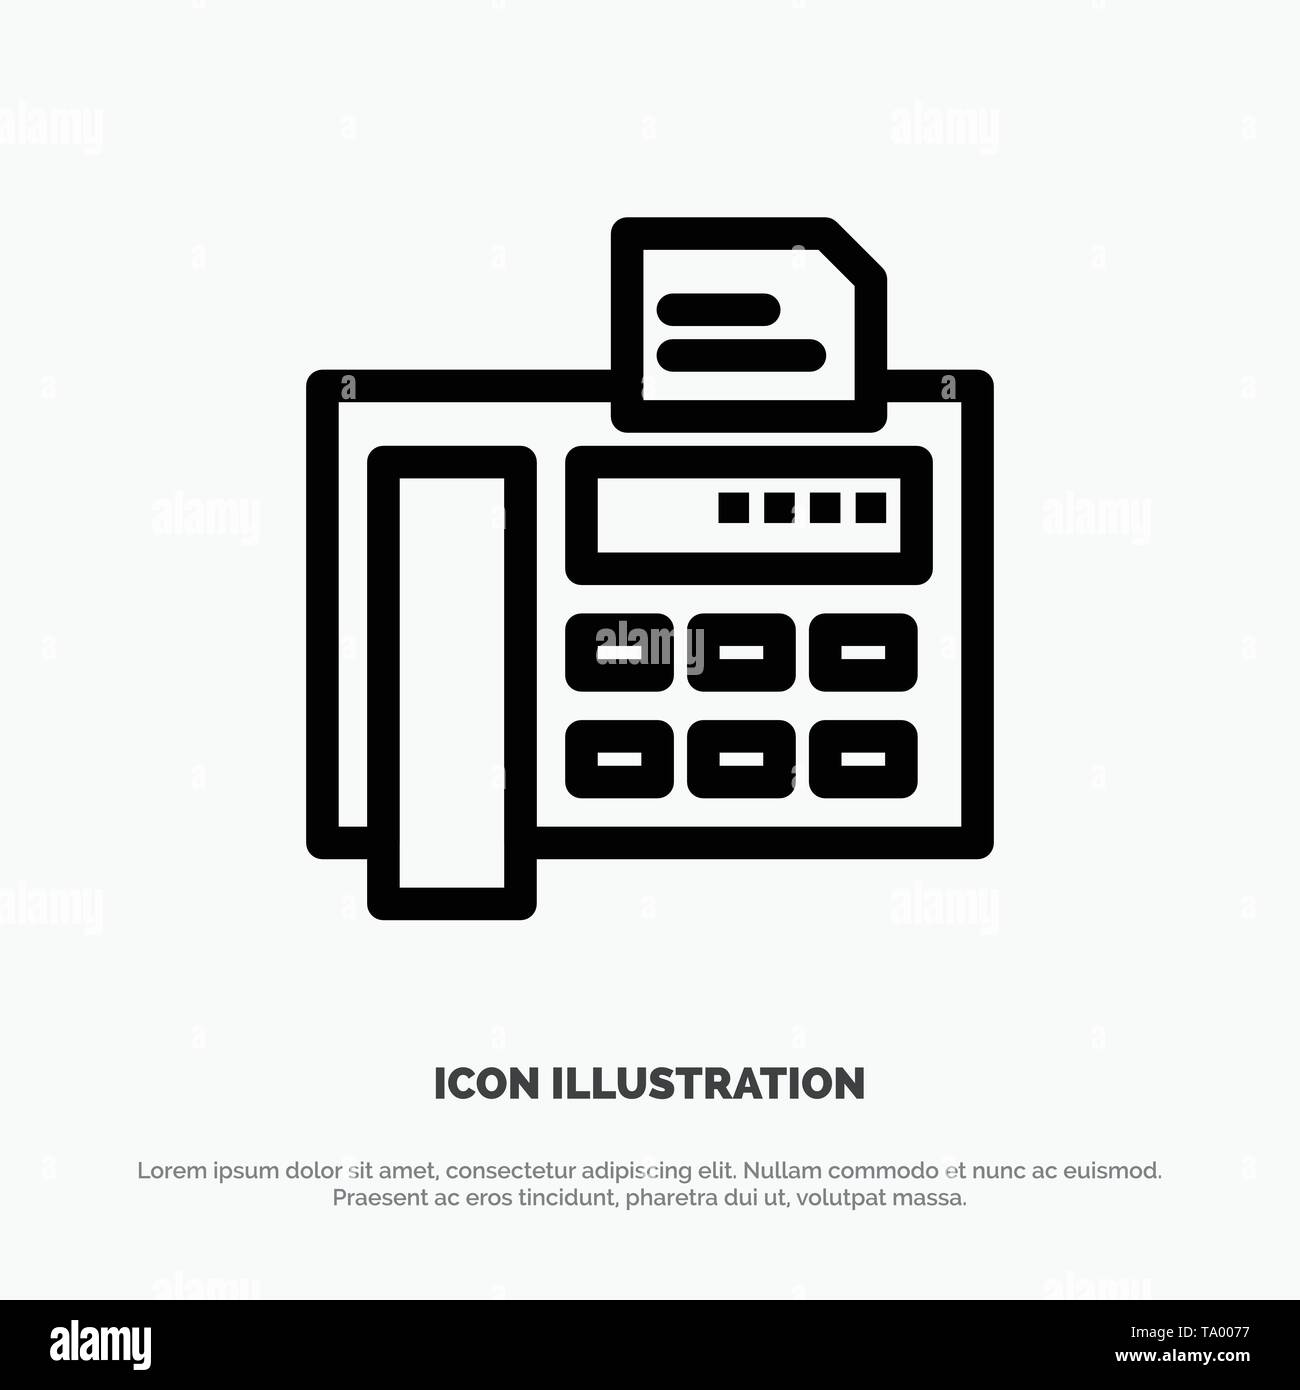 Fax, Phone, Typewriter, Fax Machine Line Icon Vector - Stock Image